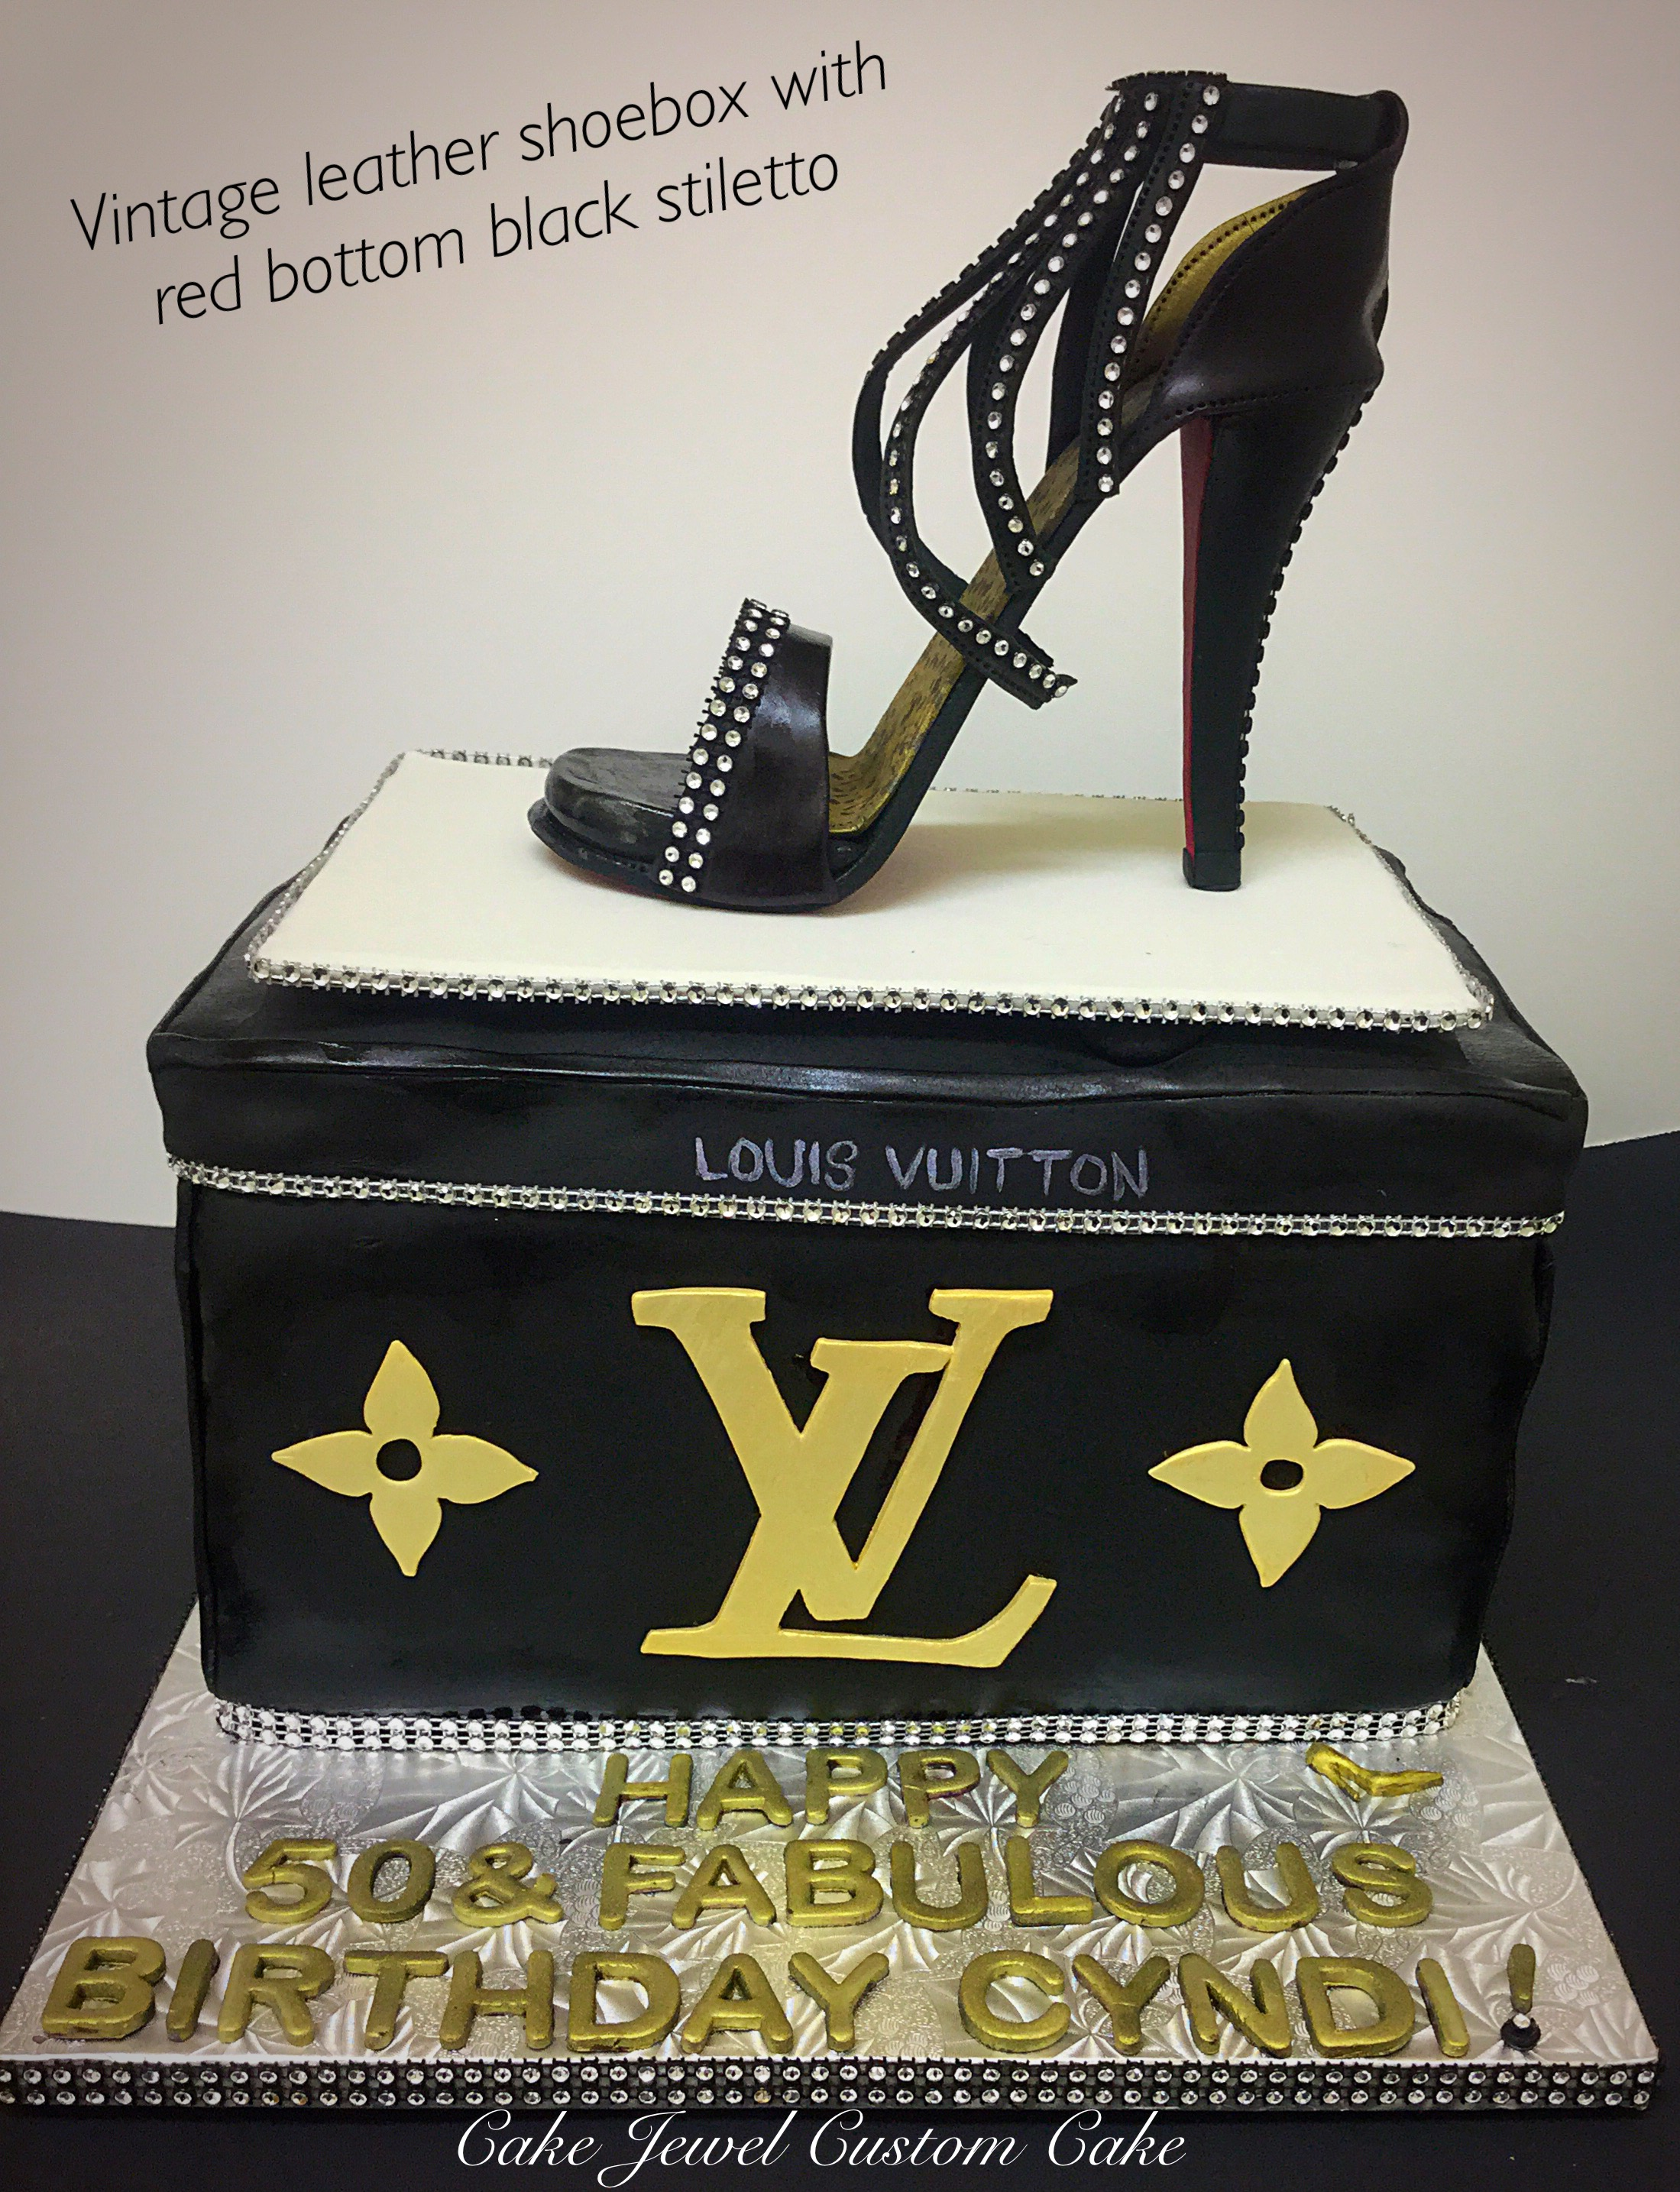 Designer Shoe and Box Cake